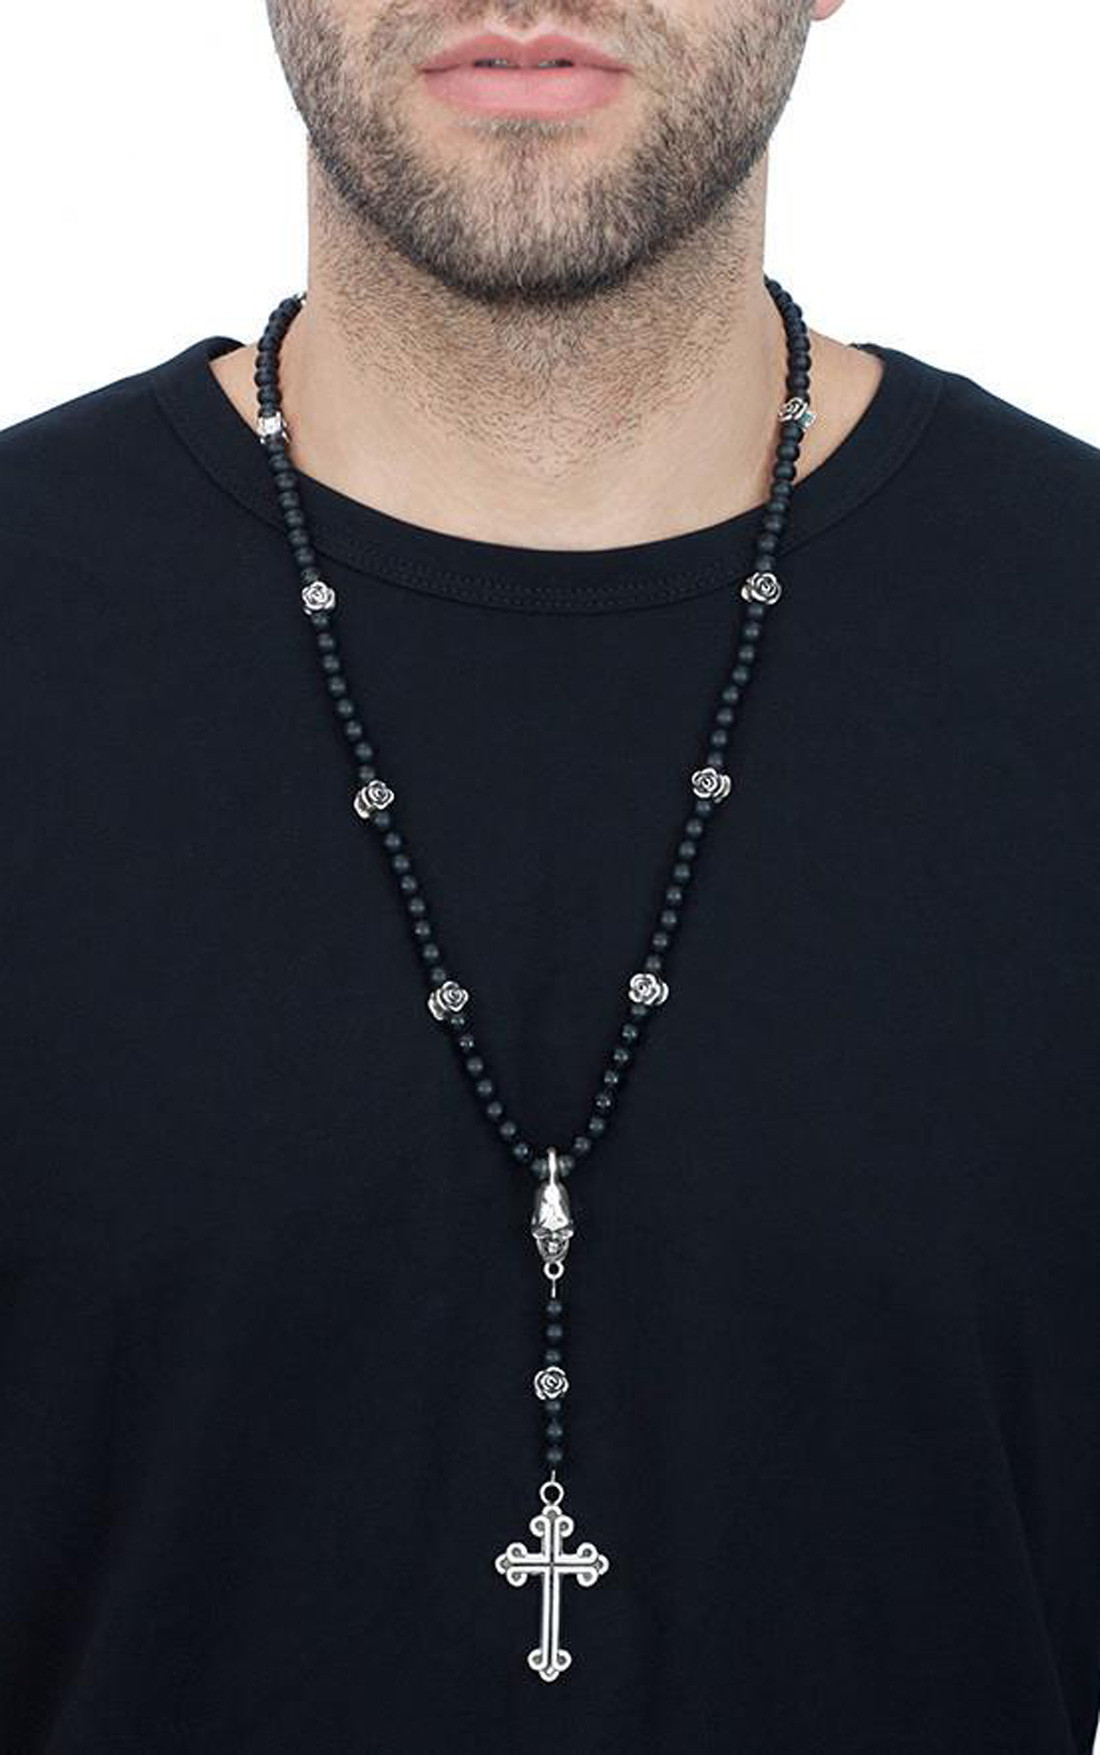 King Baby - Black Onyx Bead Rosary with Roses Skull and Traditional Cross (K56-5042)